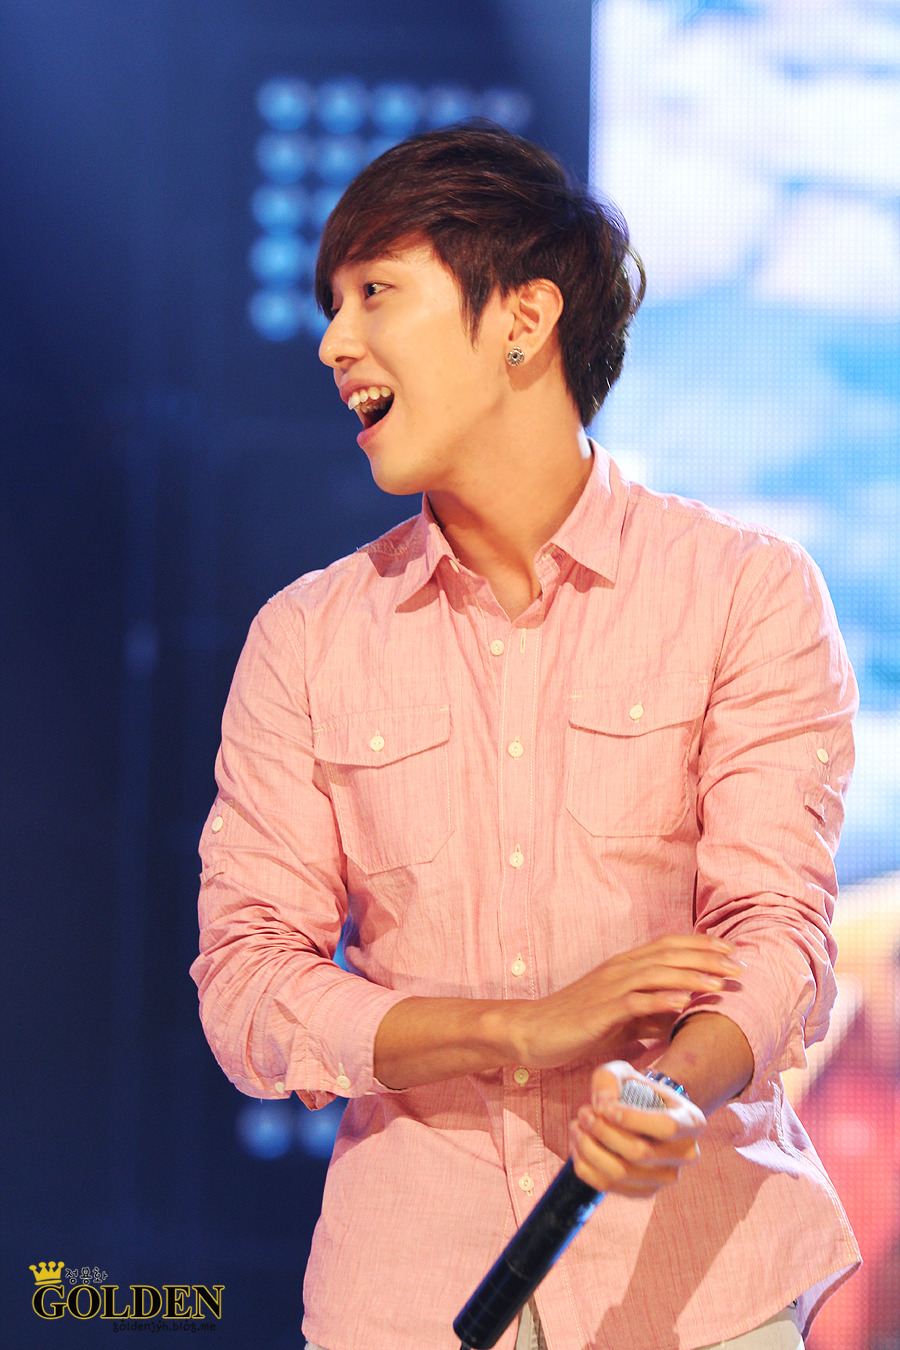 120607 YongHwa @ Mnet Mcoutdown Visit http://goldenjyh.blog.me to download more pics